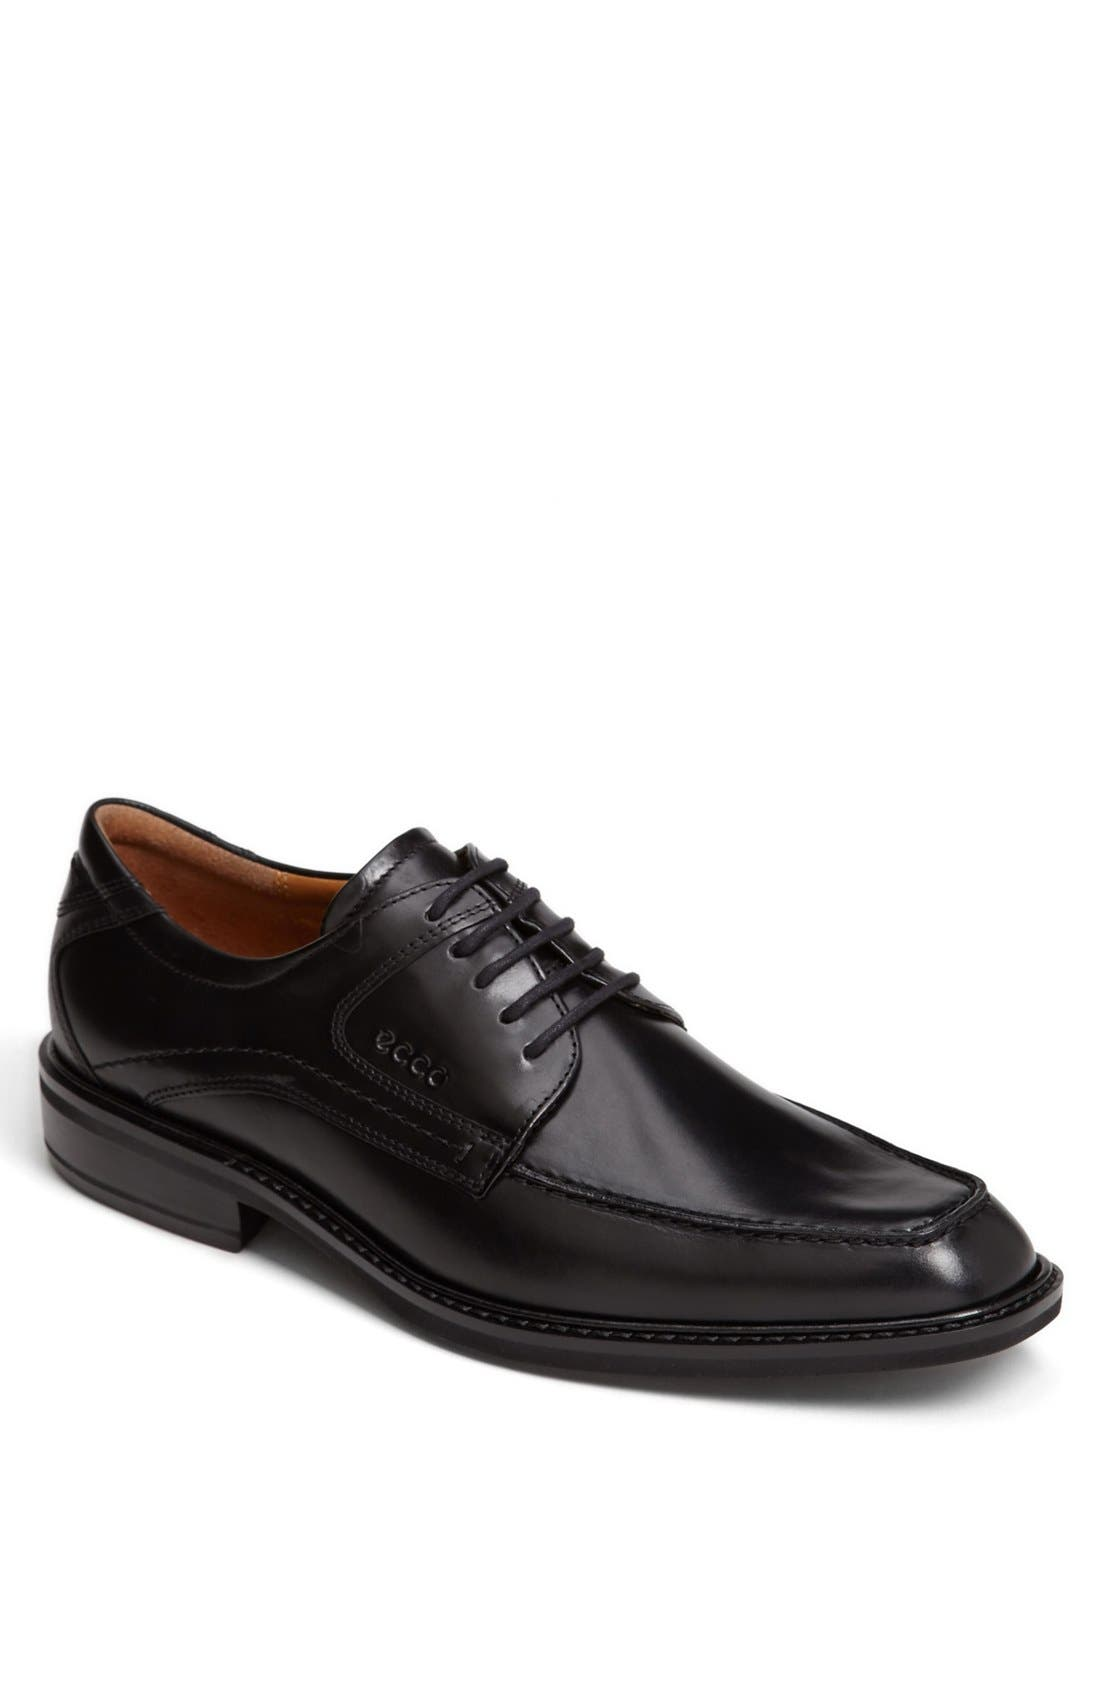 'Windsor' Apron Toe Derby,                         Main,                         color, Black